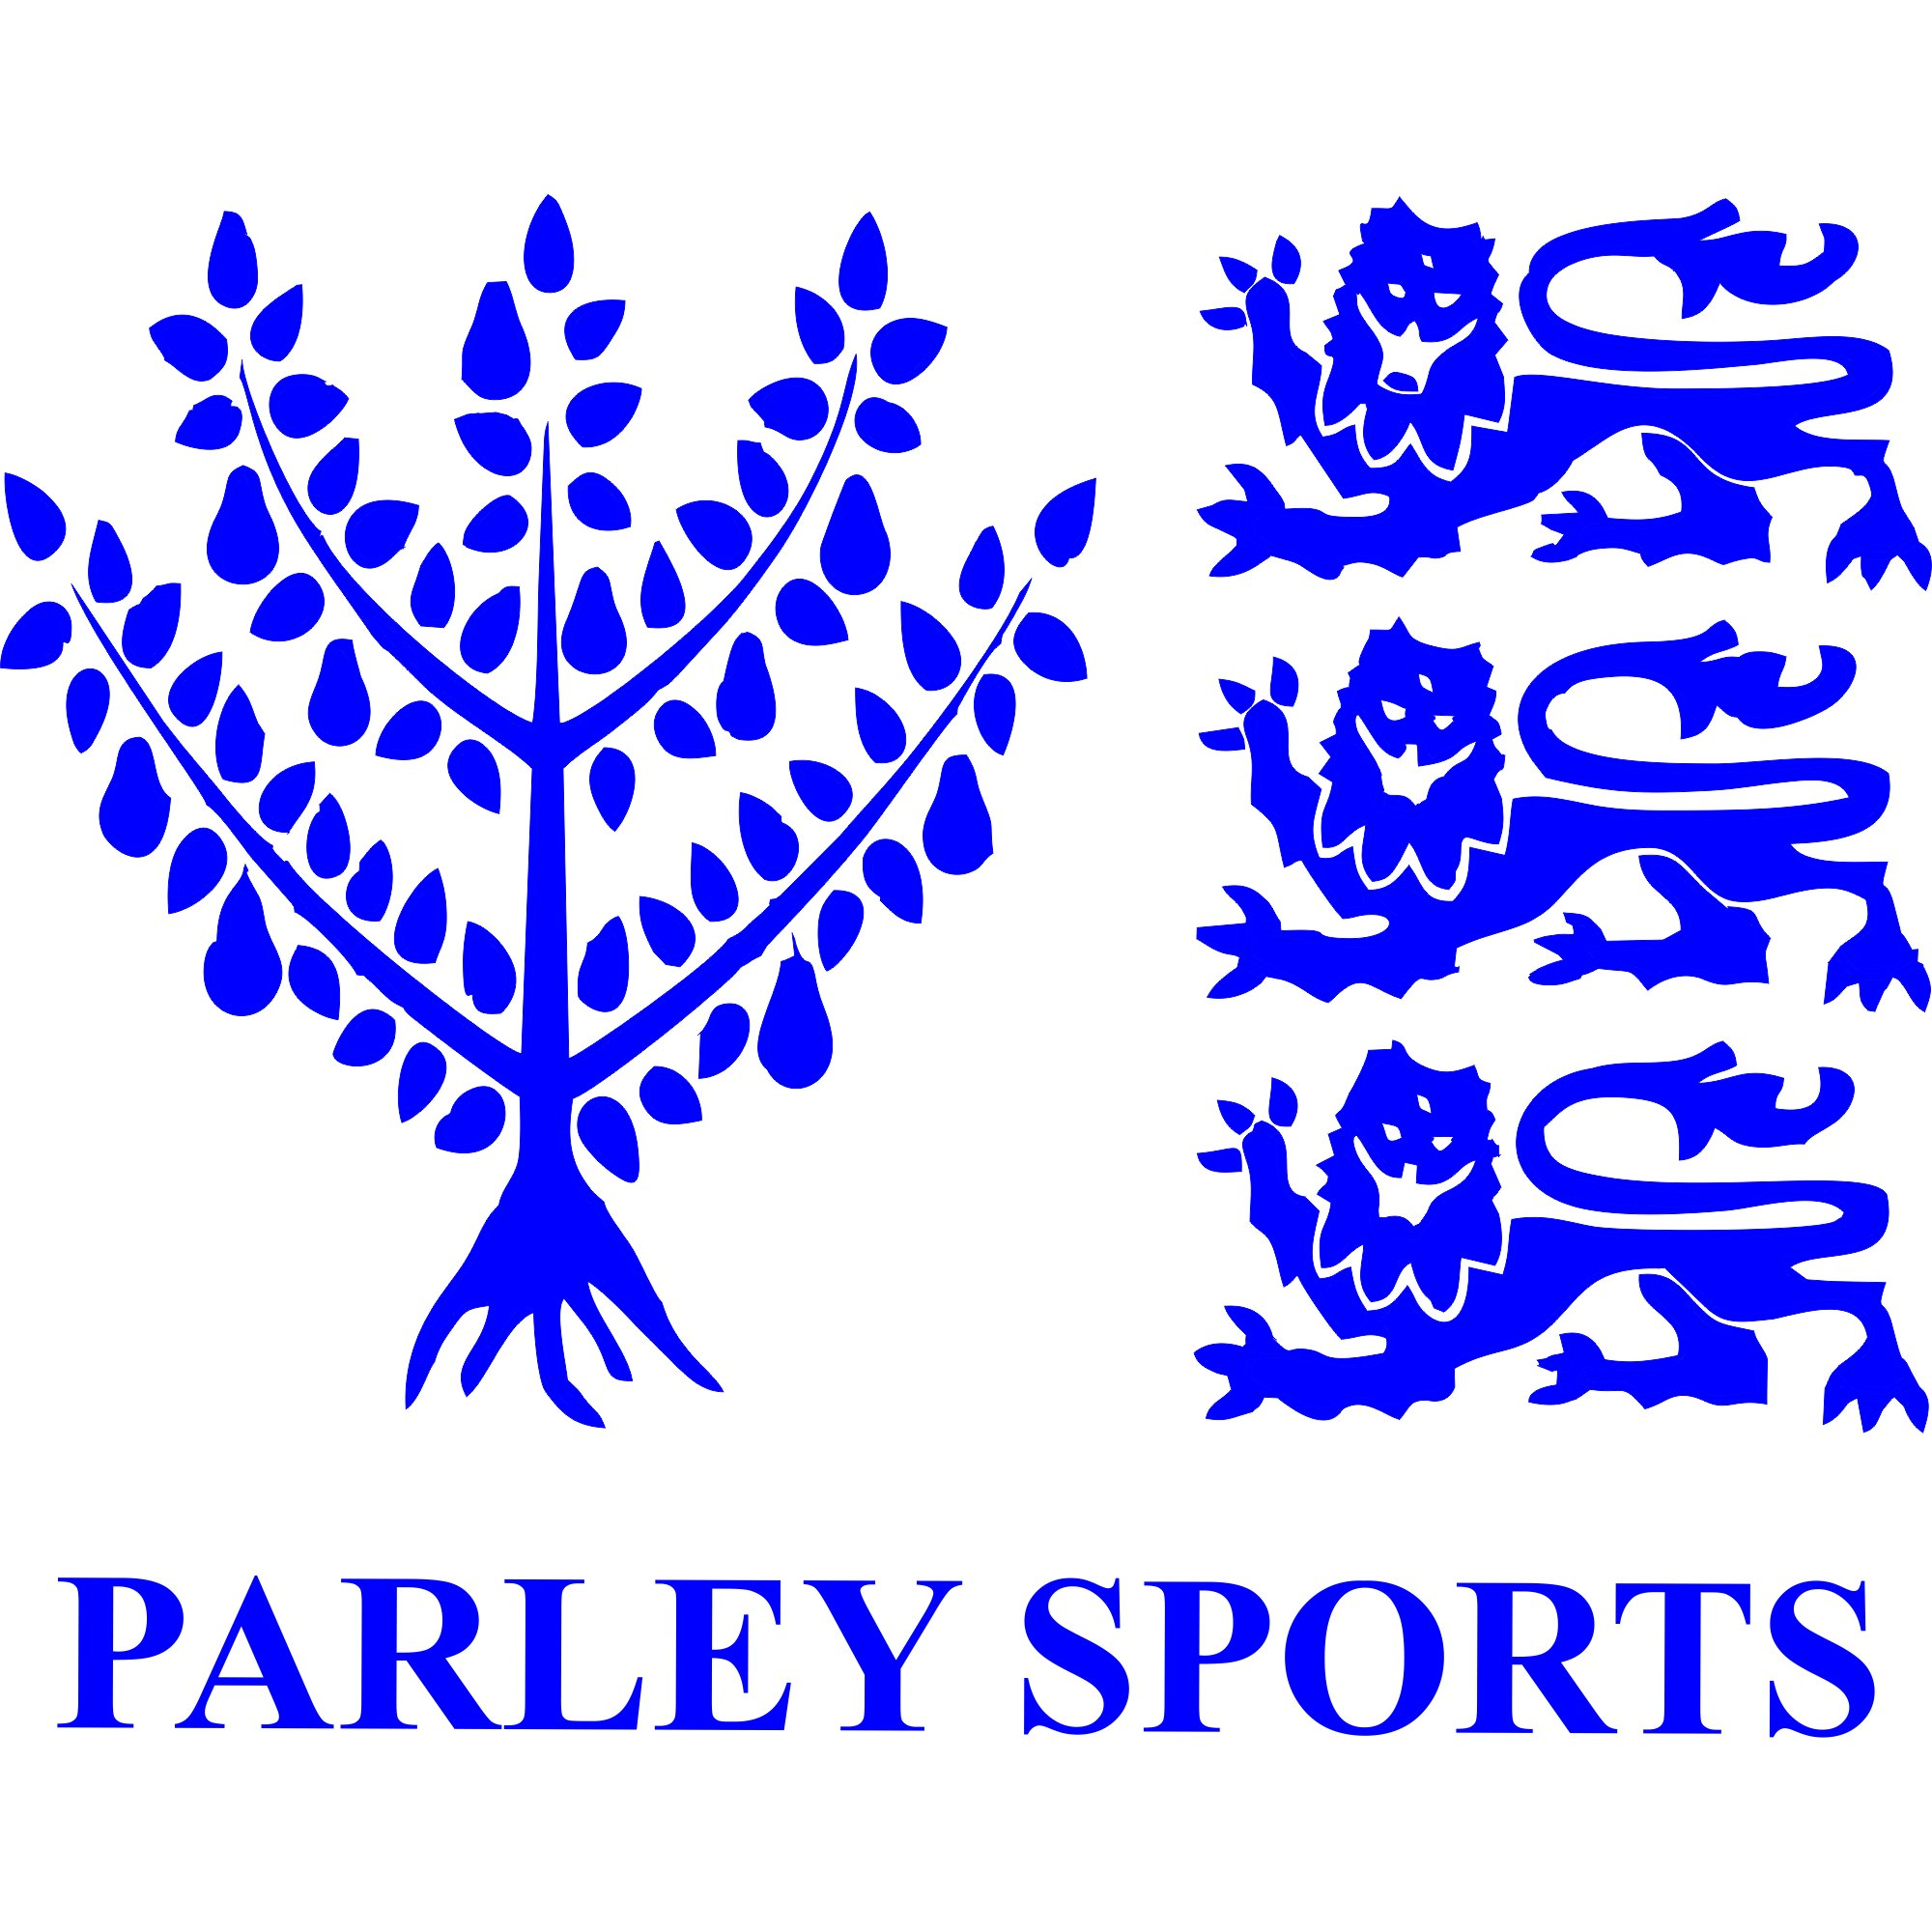 Parley Sports Ability Counts Football logo